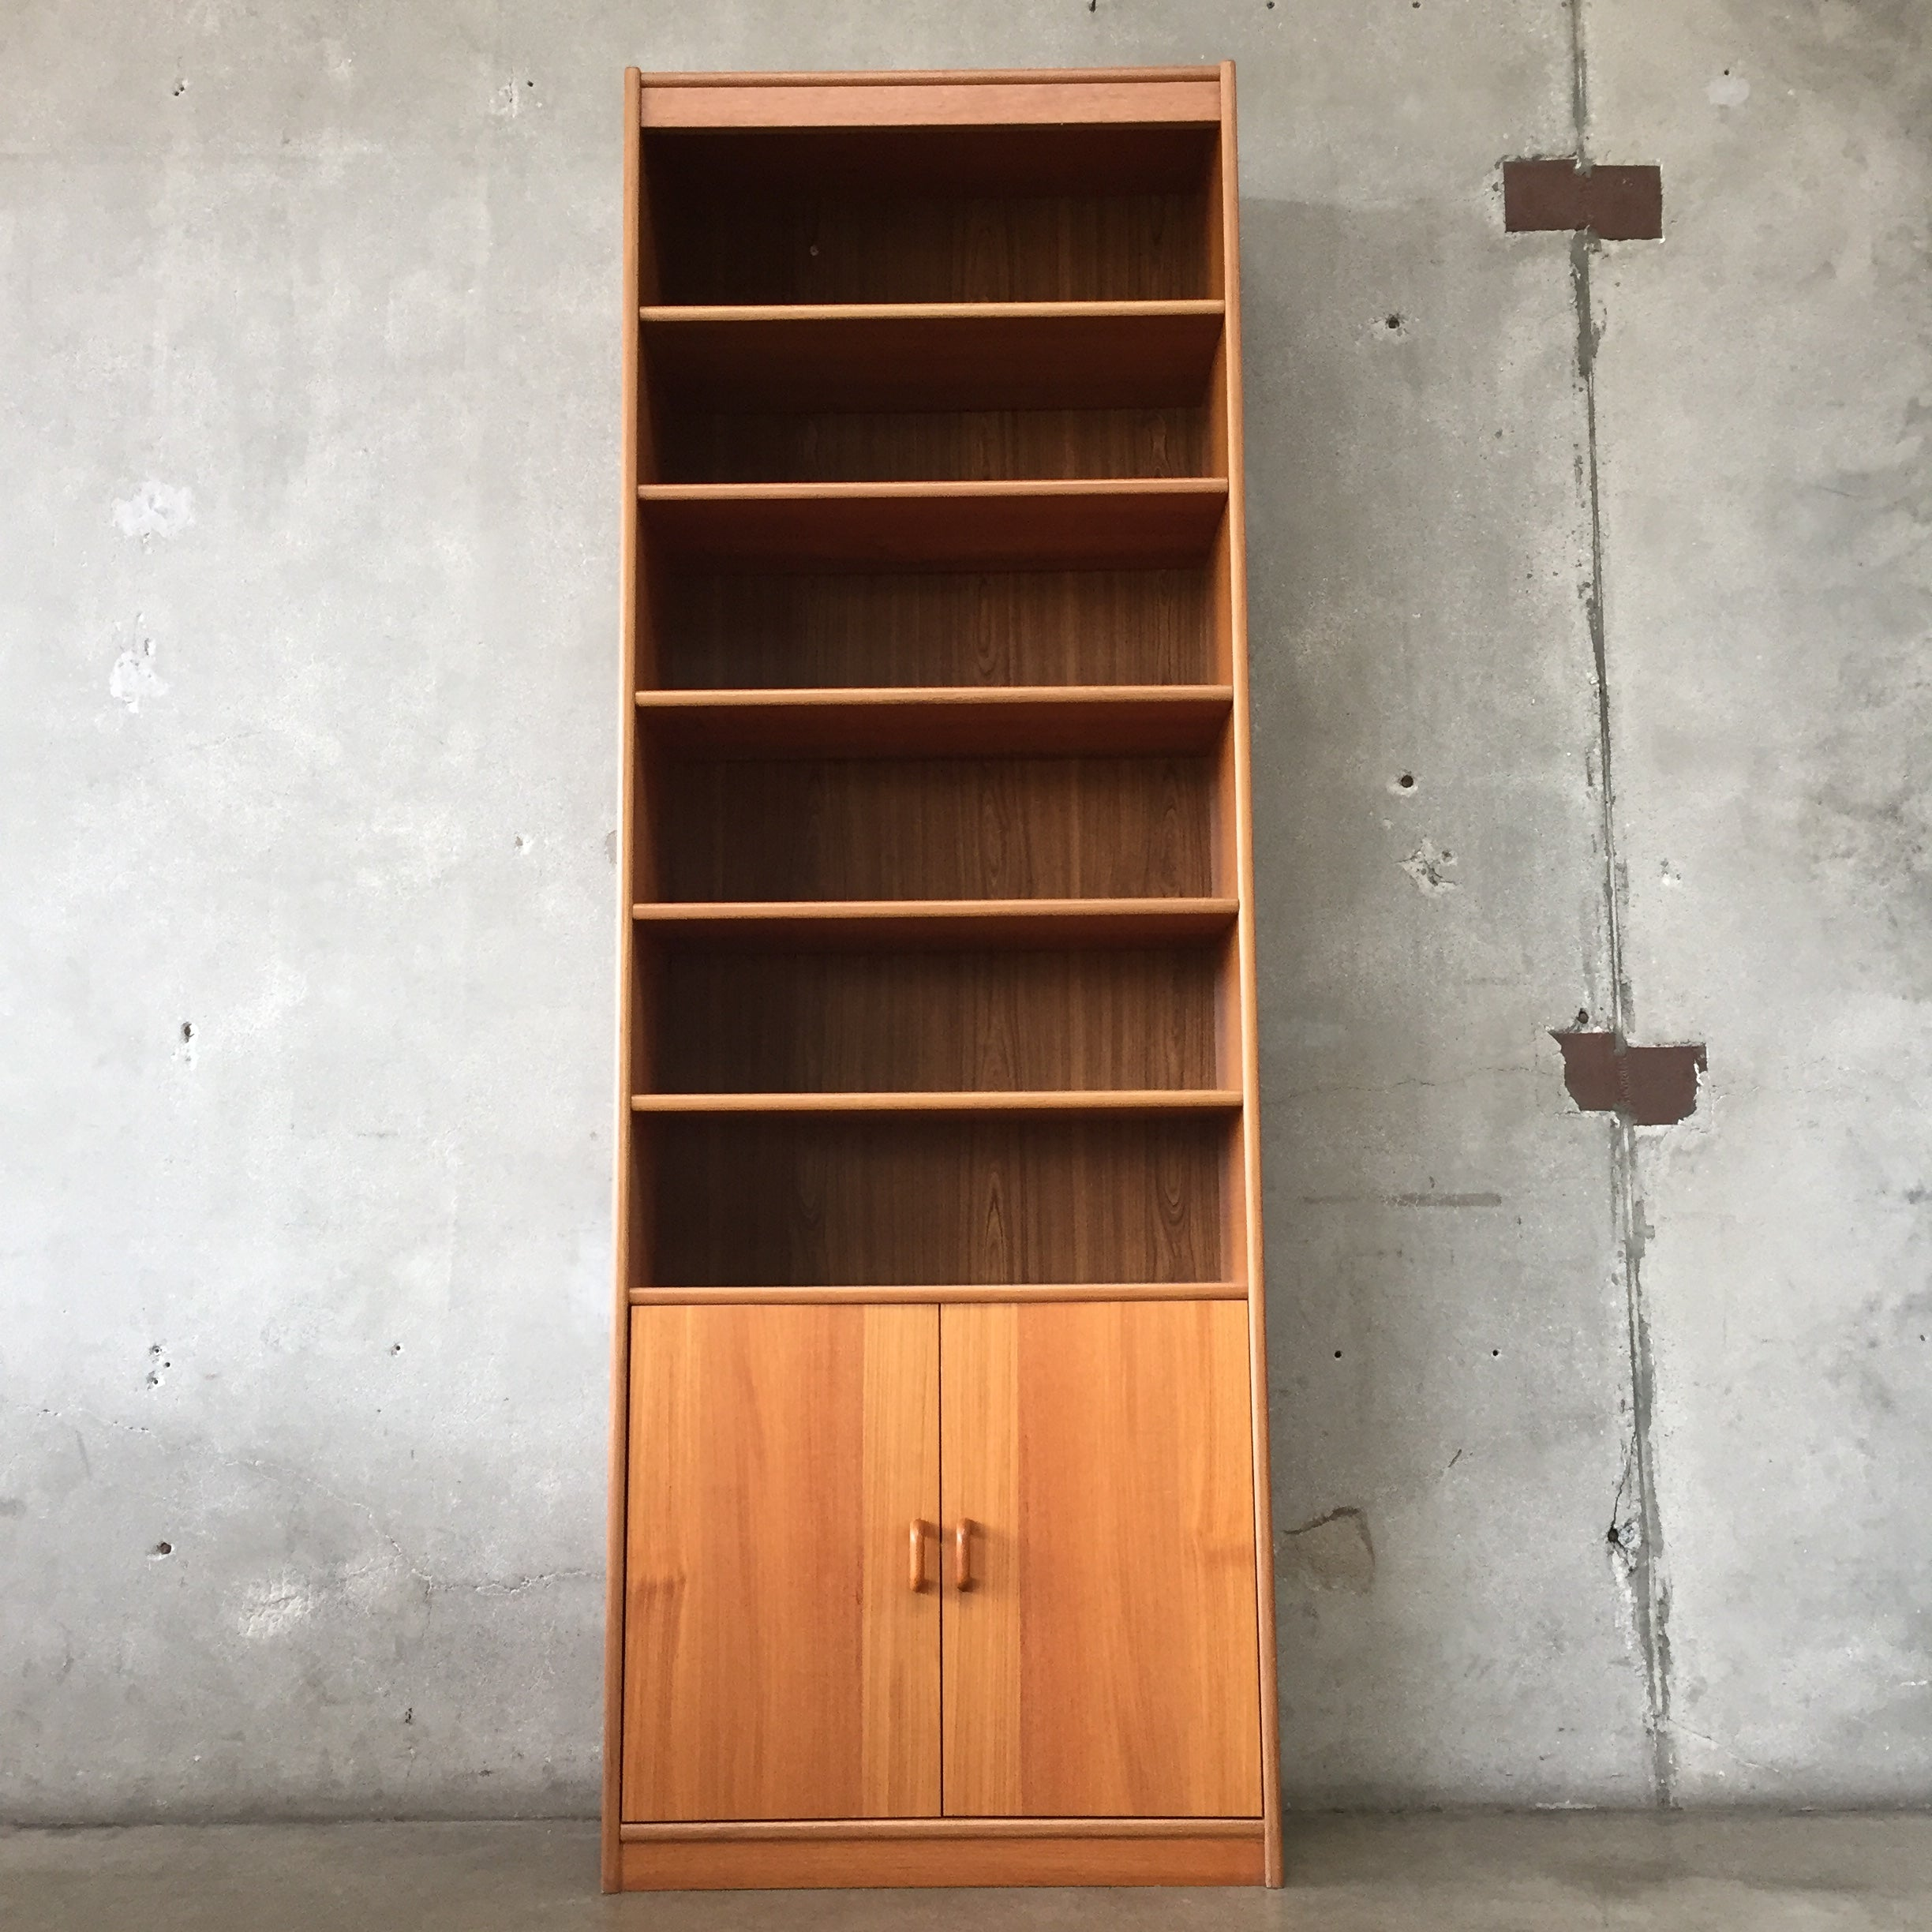 doors with bookcases century and bookshelf bookcase picked large mid bookshelves vintage mcm modern